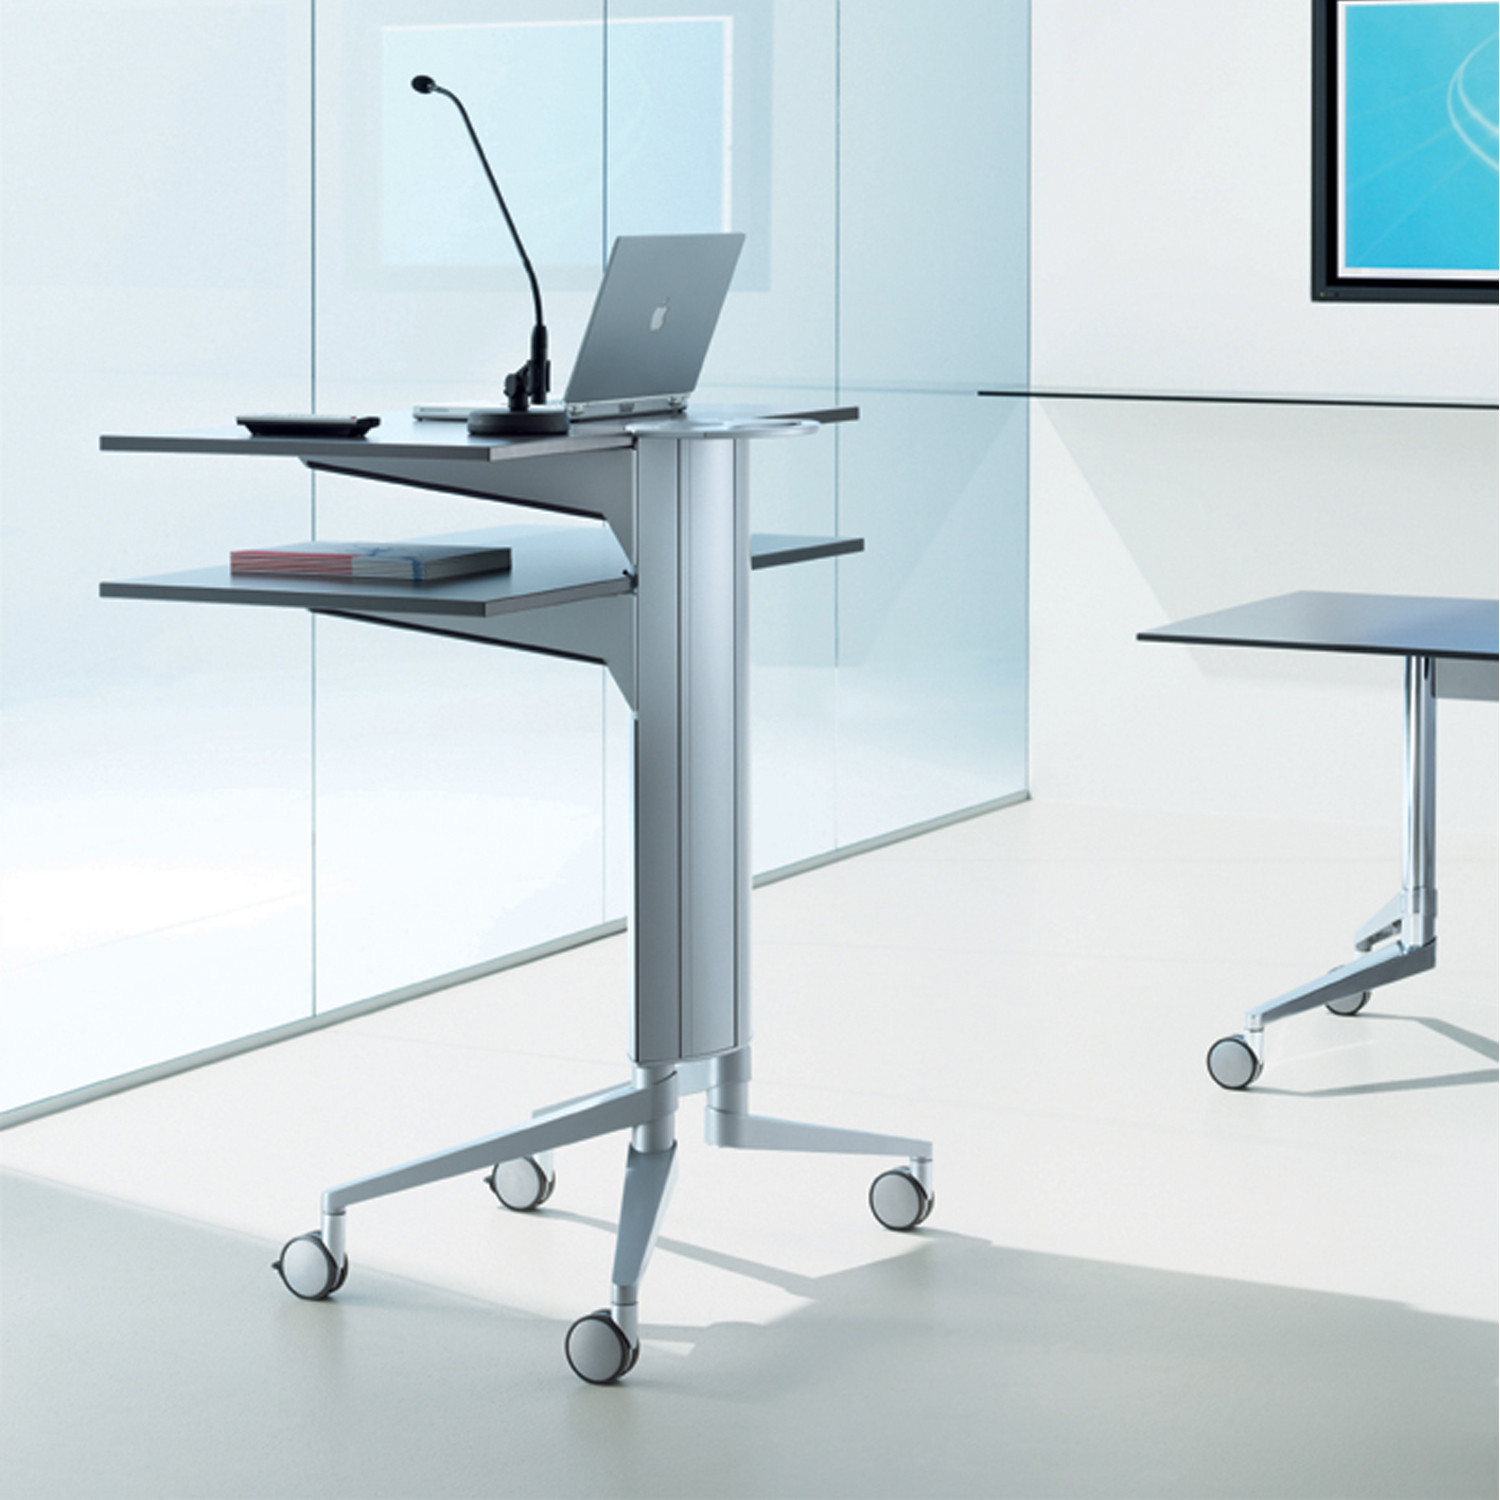 Flex Lectern Media Trolley by Wiesner Hager